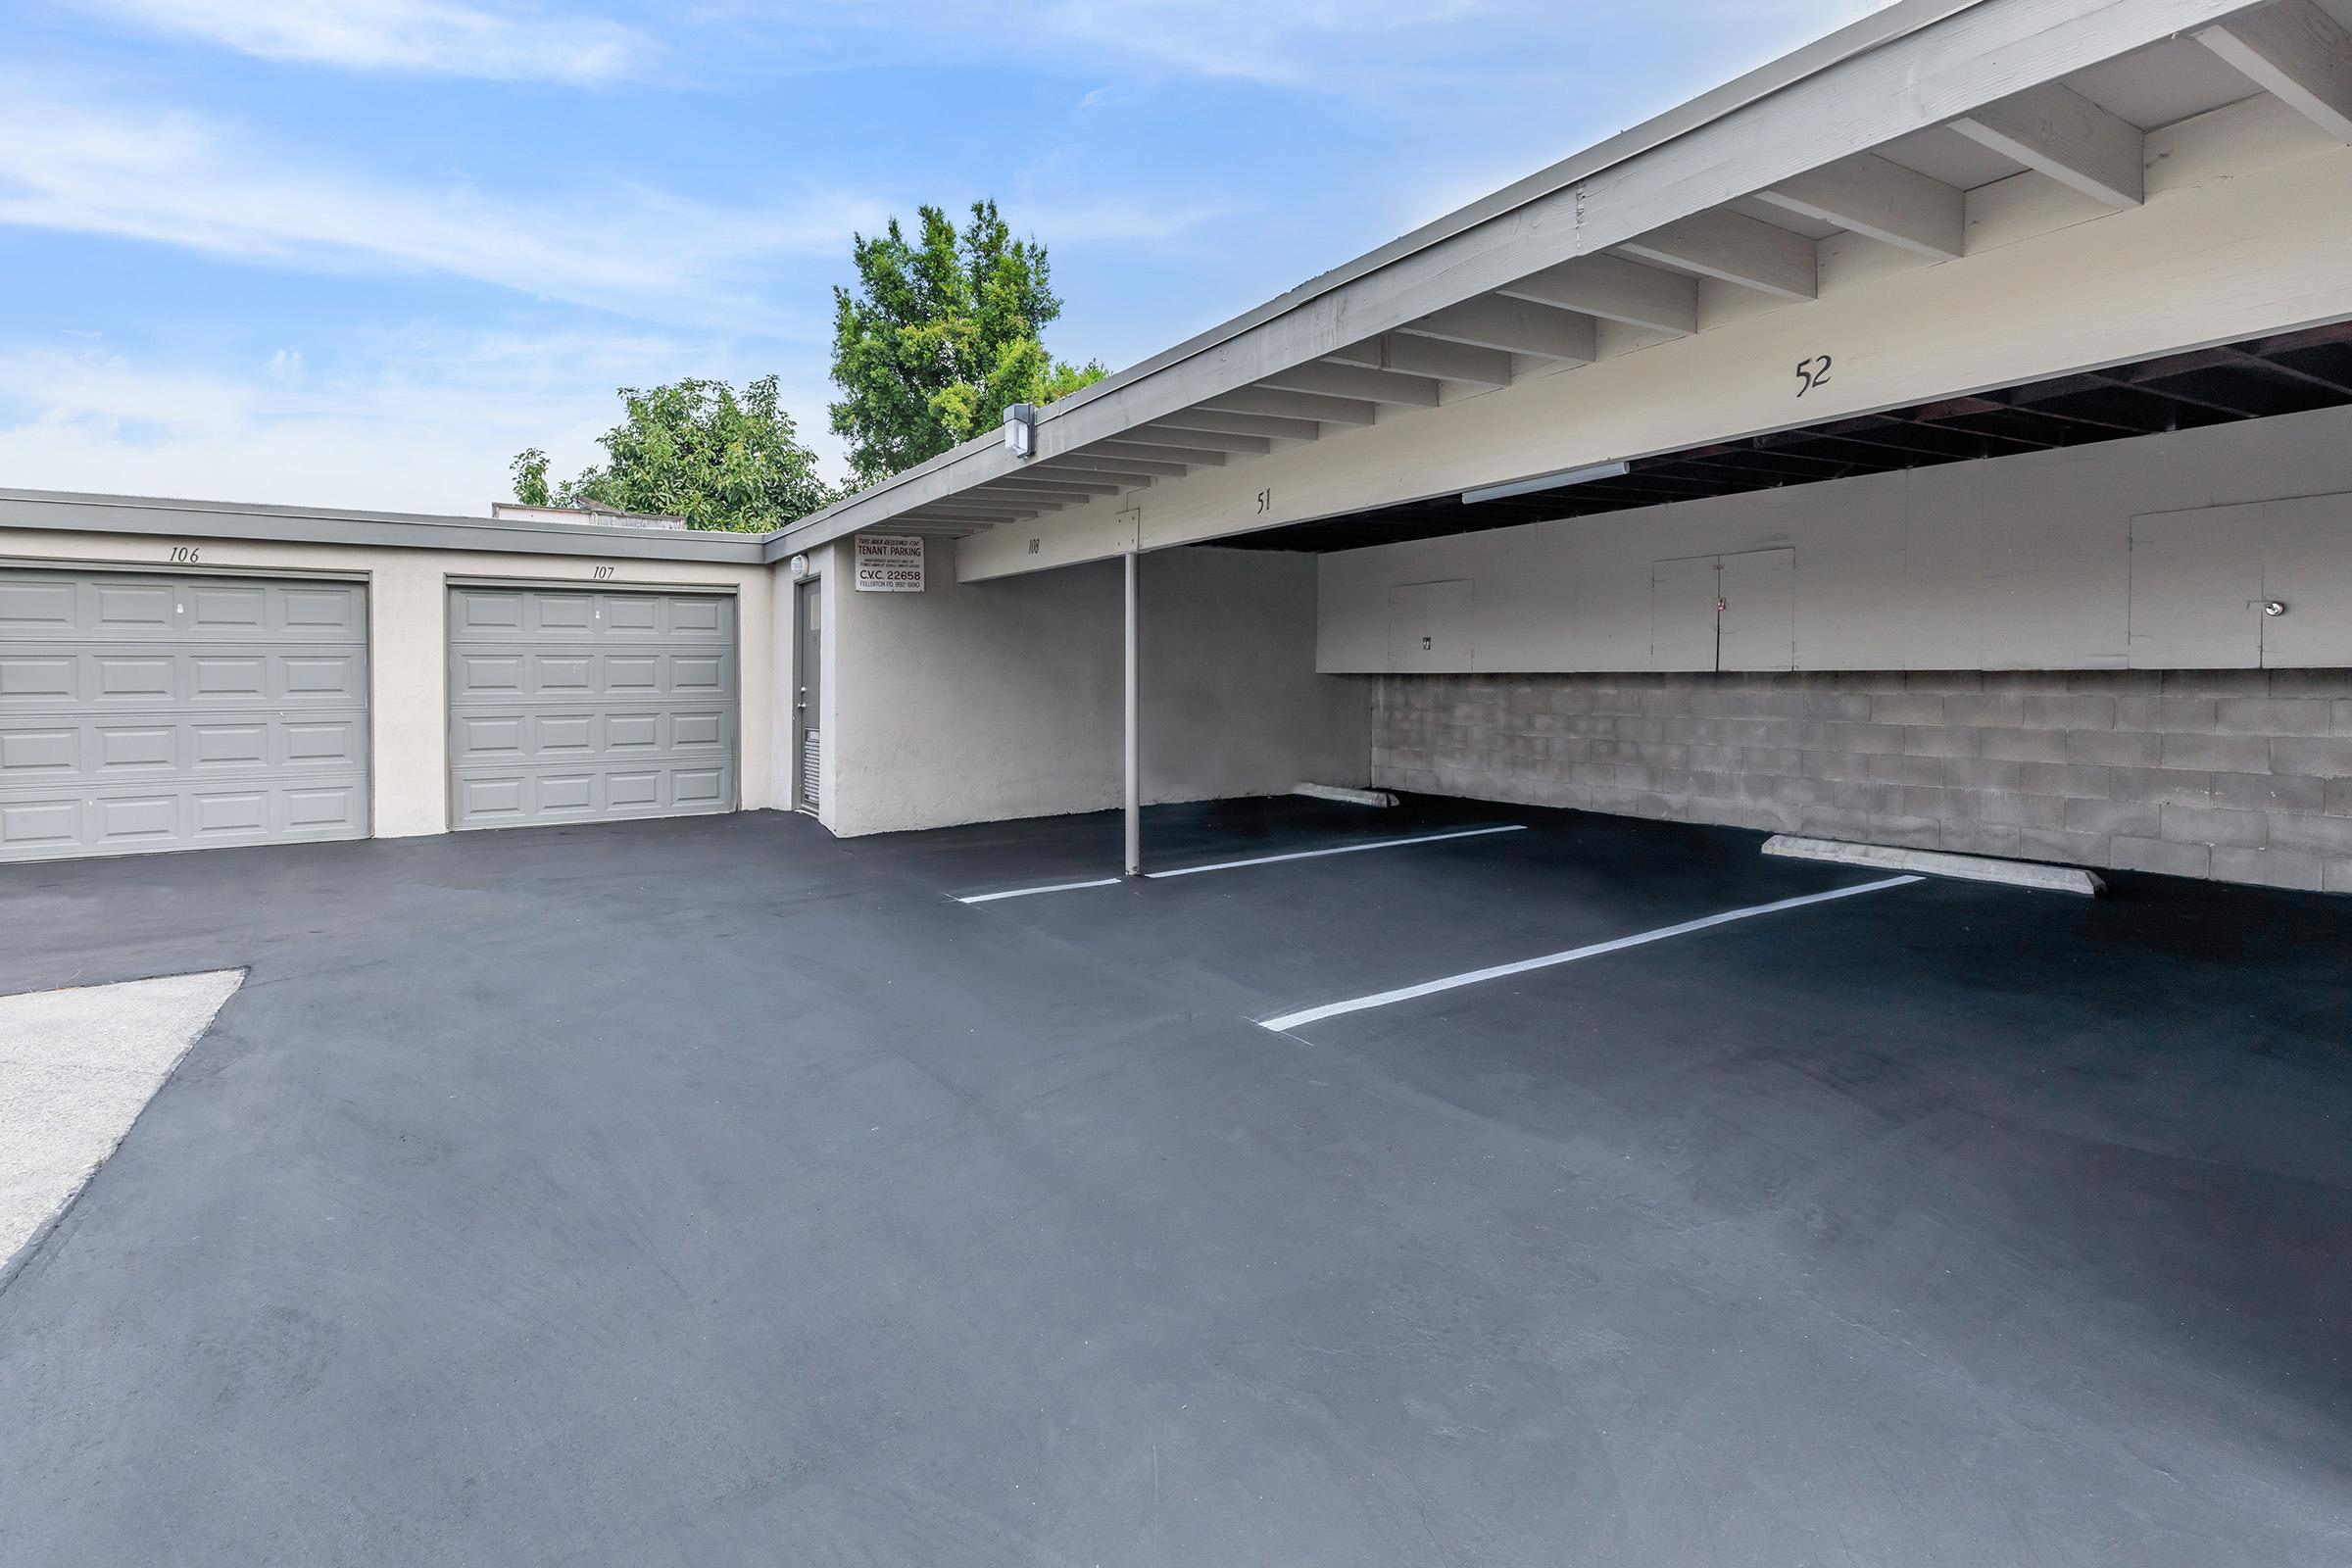 Covered parking spots and garages